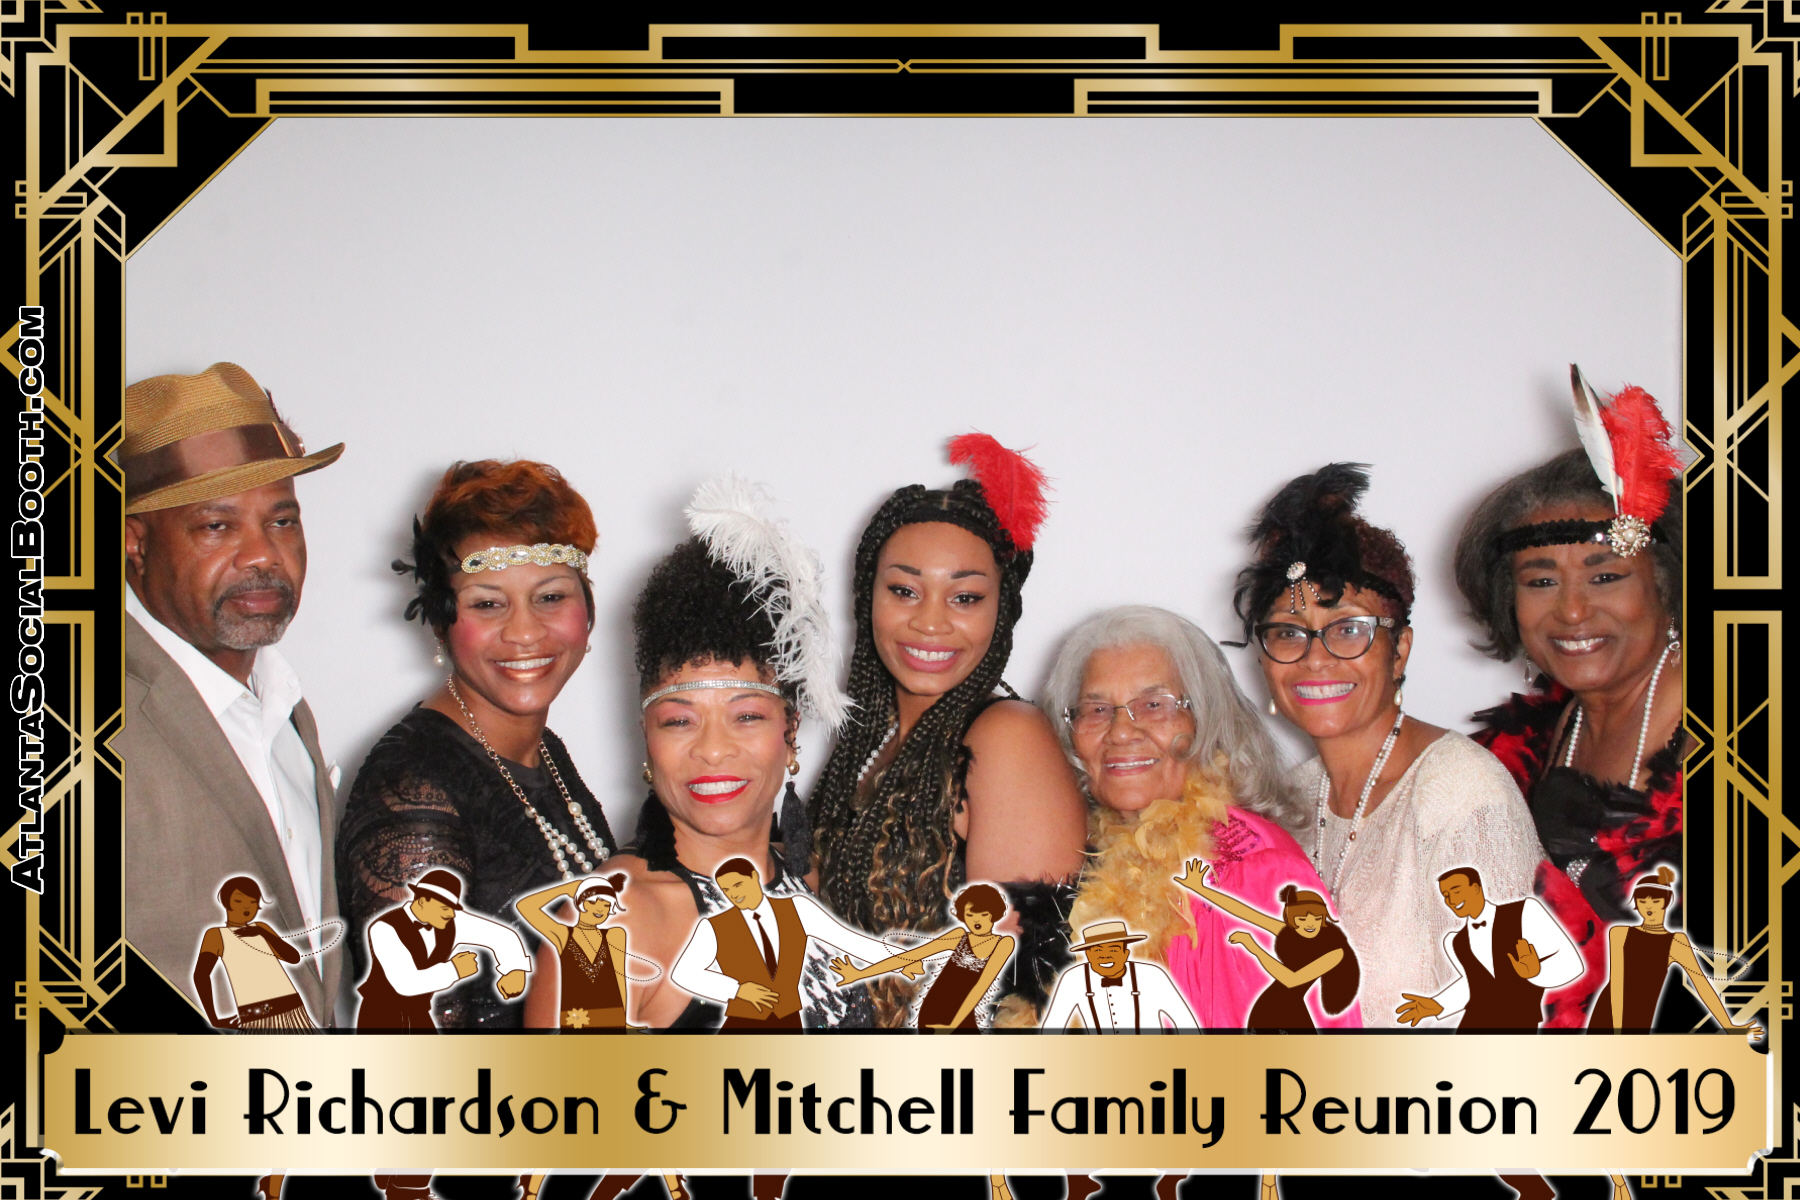 Levi Richardson & Mitchell Family Re